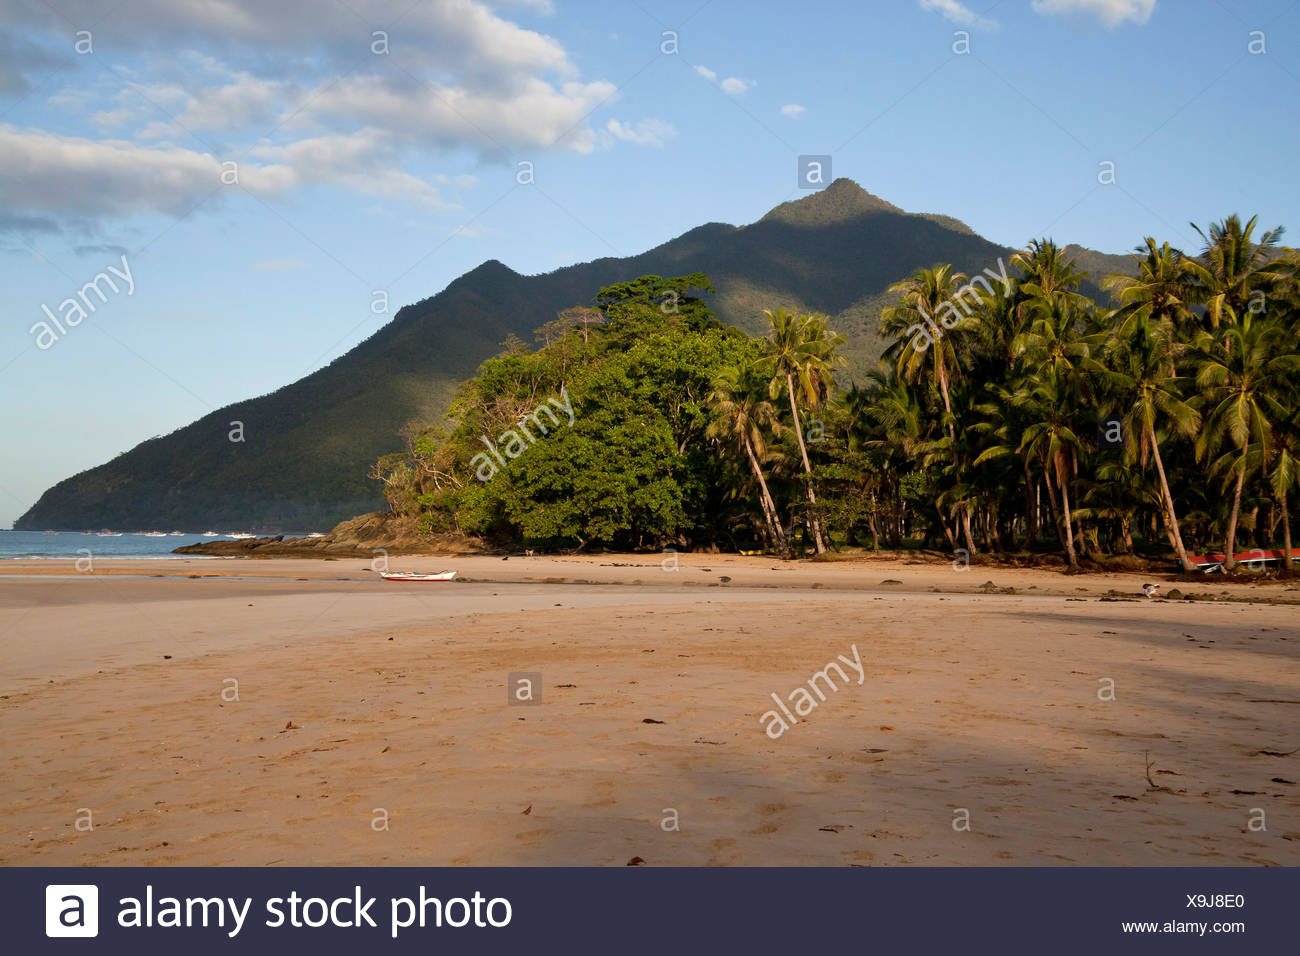 The deserted beach of Sabang, Palawan, Philippines, Asia - Stock Image